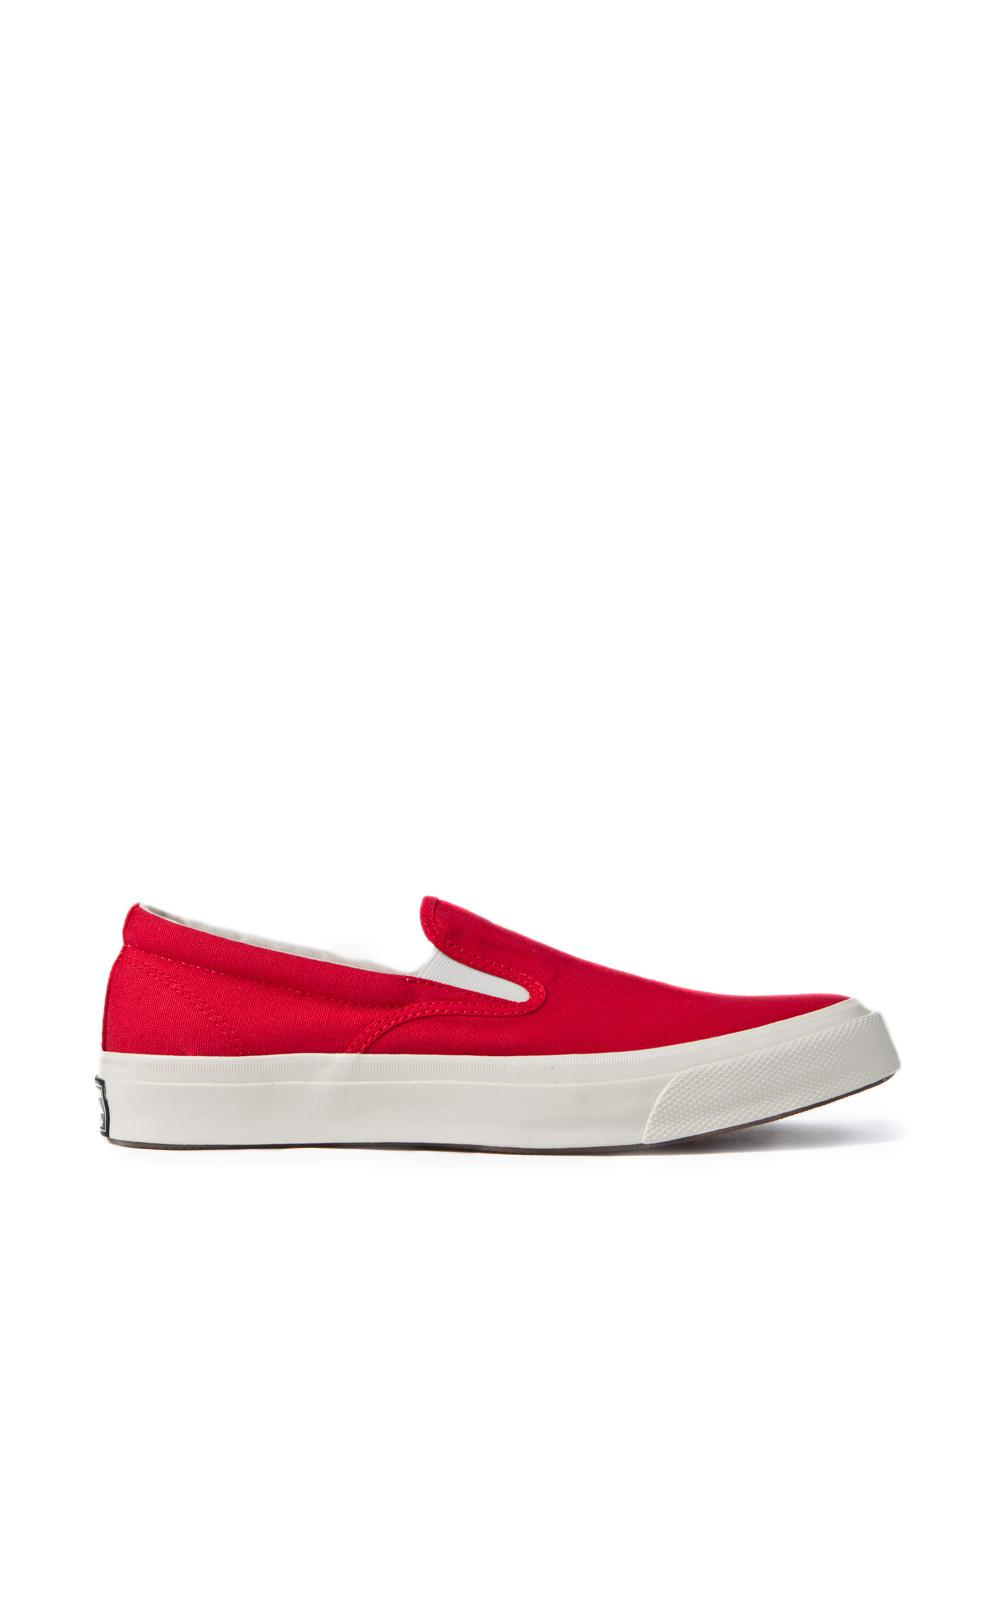 f7b79bdec795 Converse Deck Star  67 Slip Red white in Red for Men - Lyst